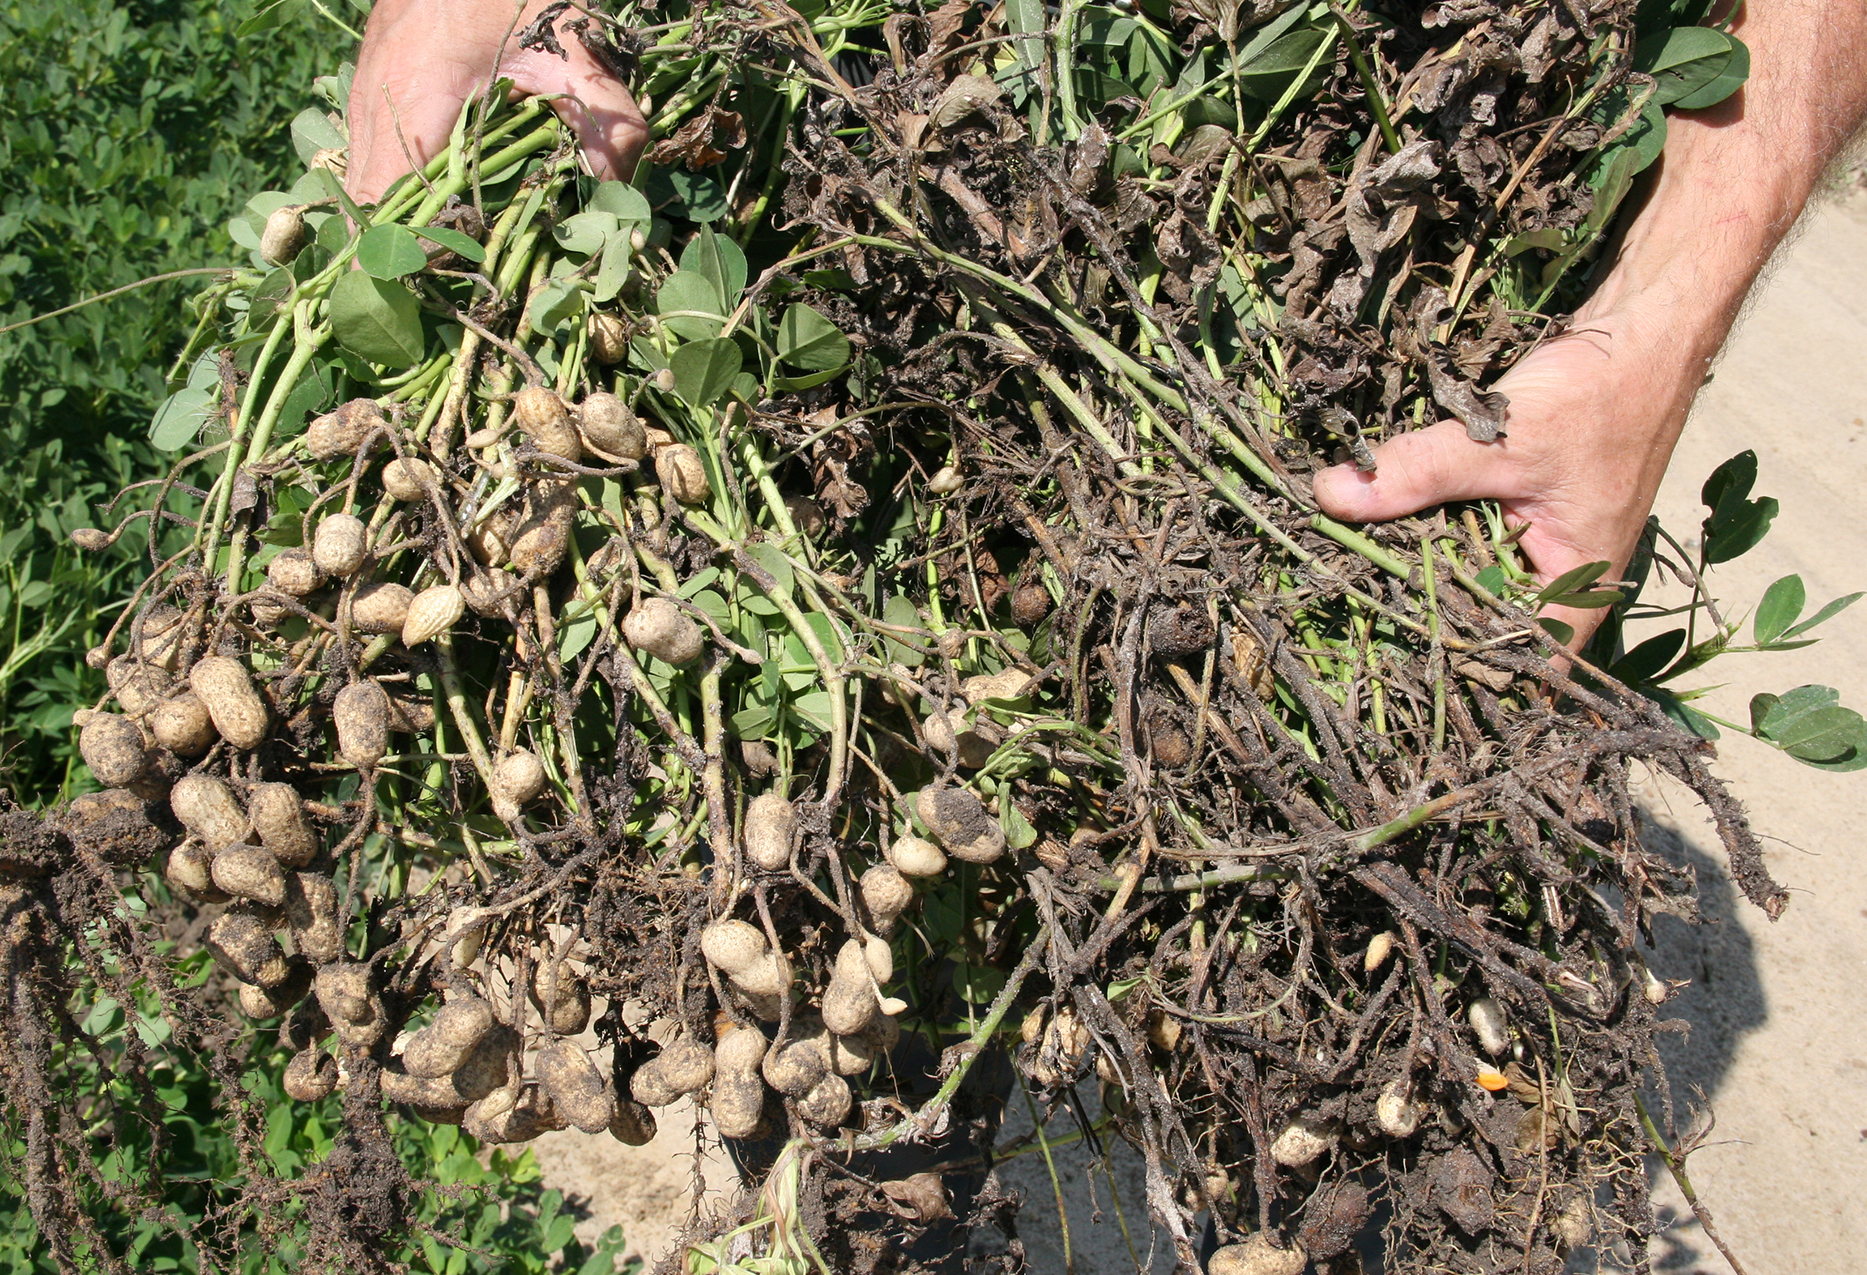 Healthy peanuts compared to peanuts infected with white mold disease.